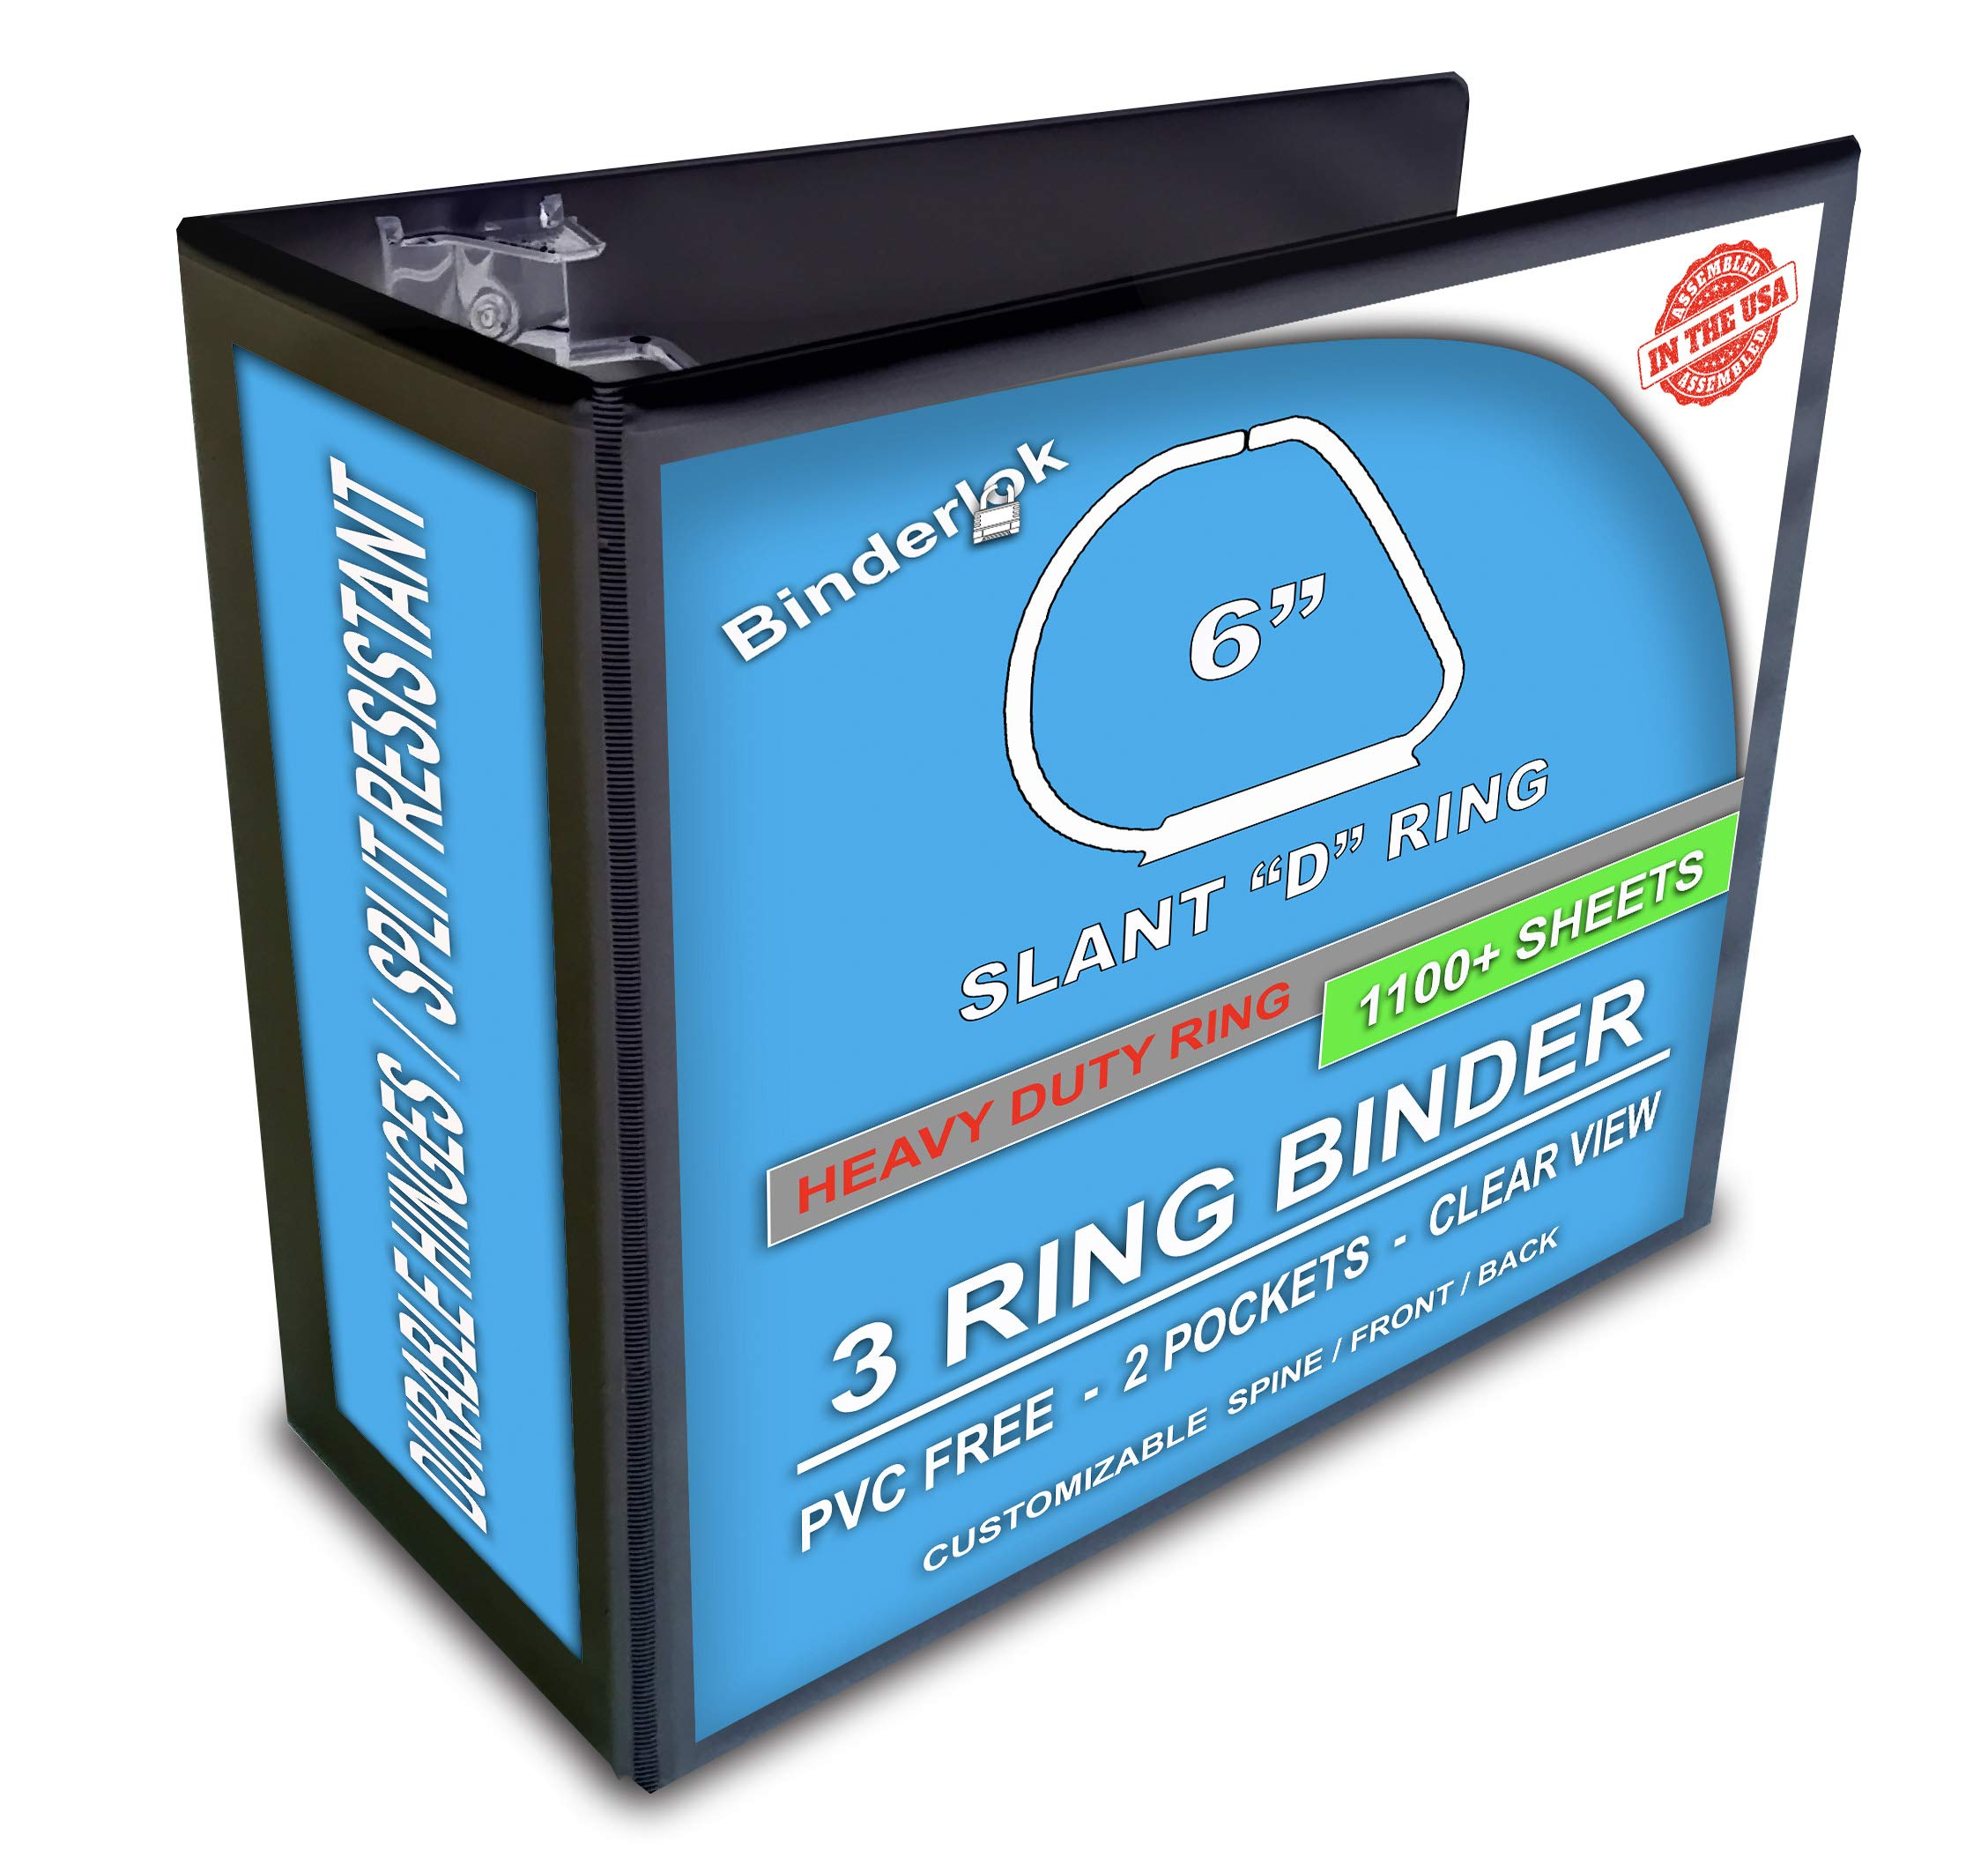 3 Ring Binder, 6-Inch, Black, 4 Pack, Clear View, Pockets by Ring Binder Depot